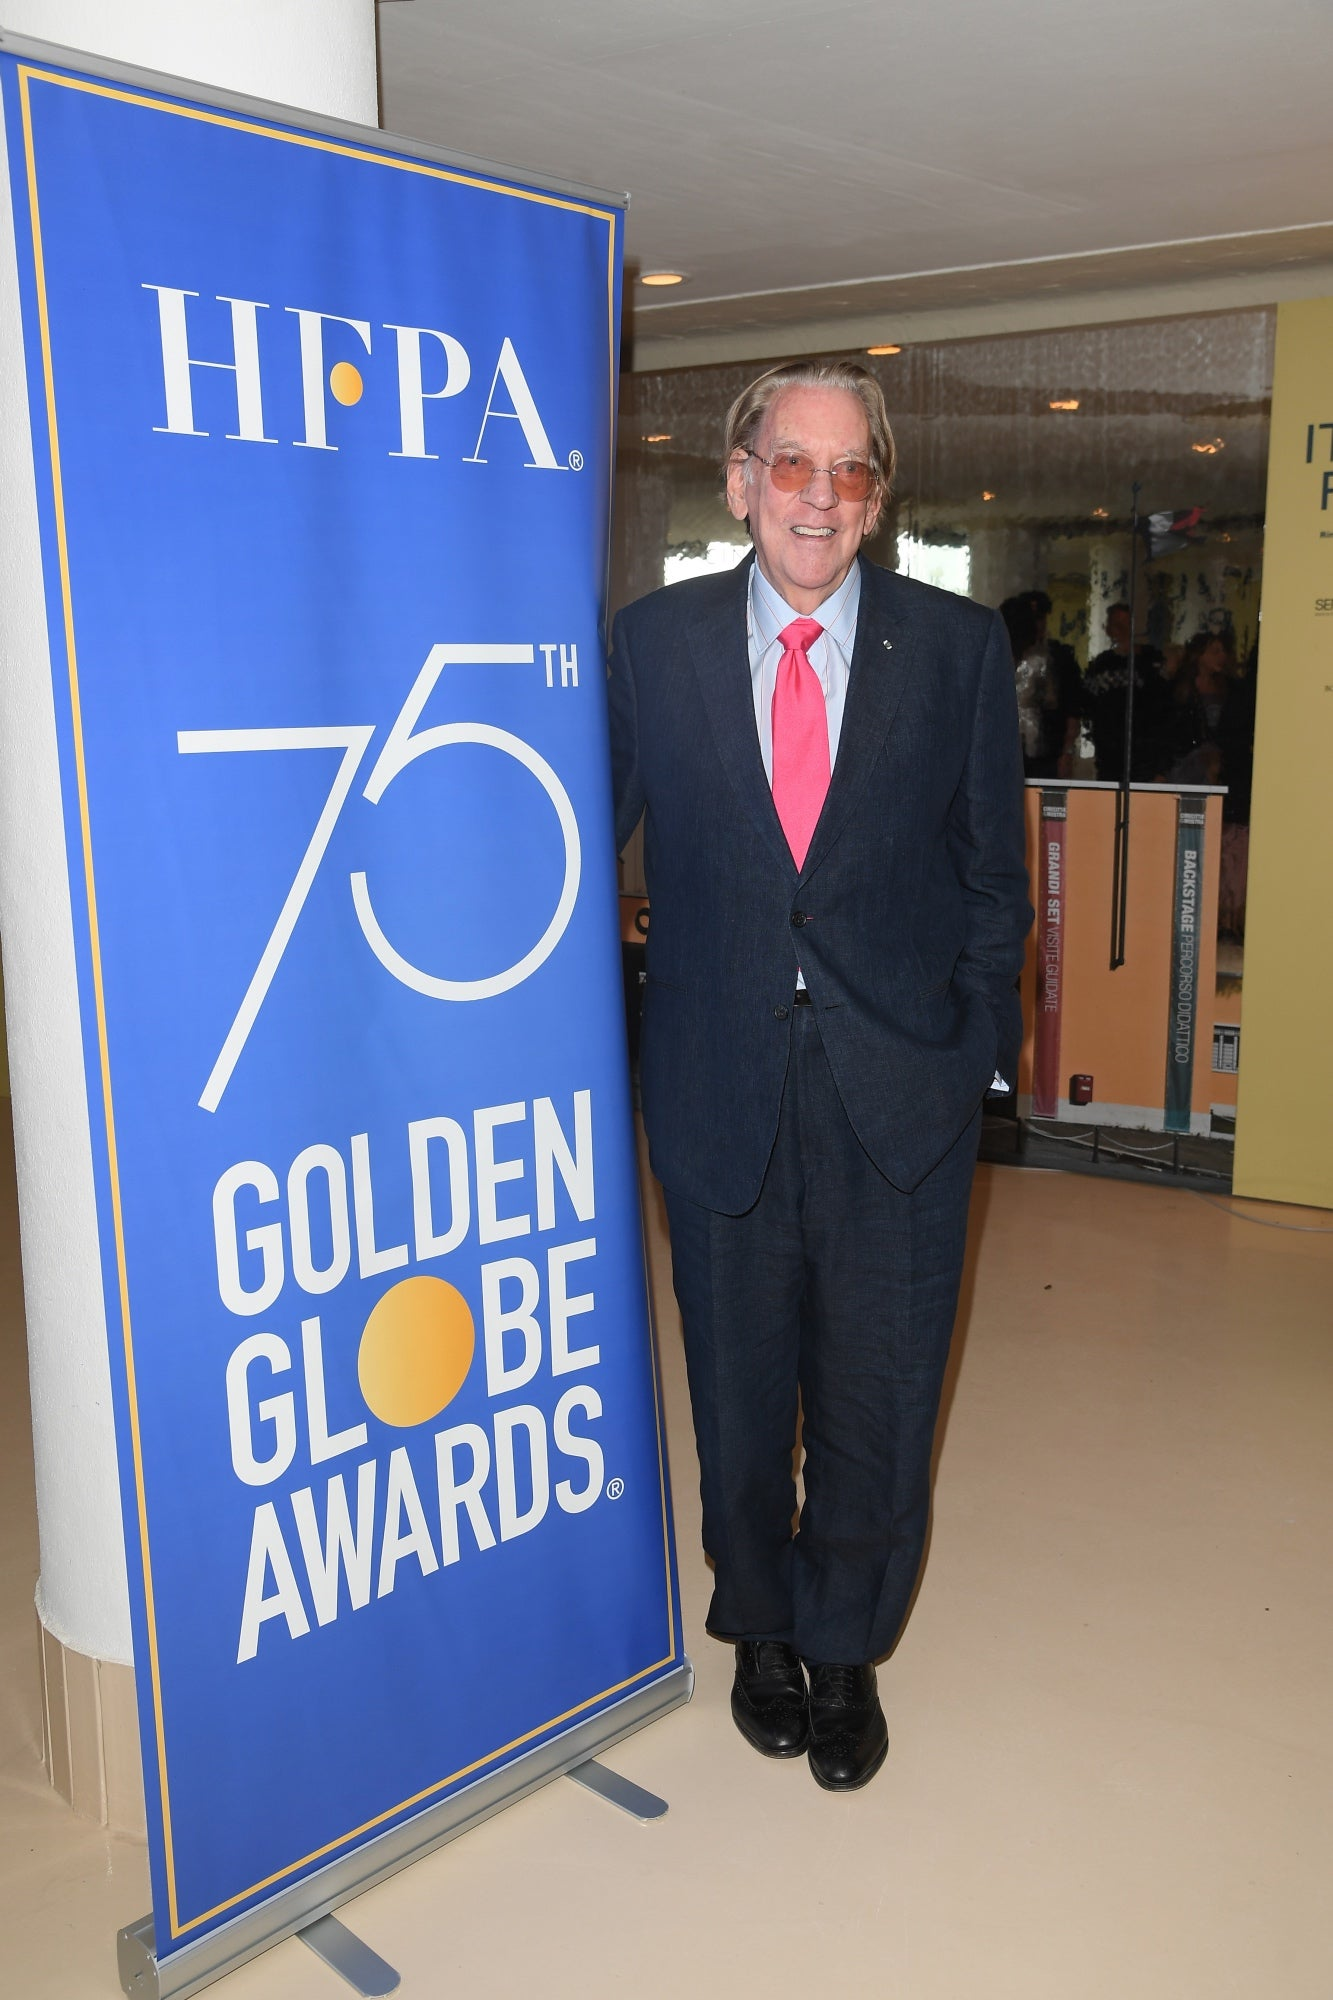 Donald Sutherland at the HFPA Reception, Venice 2017